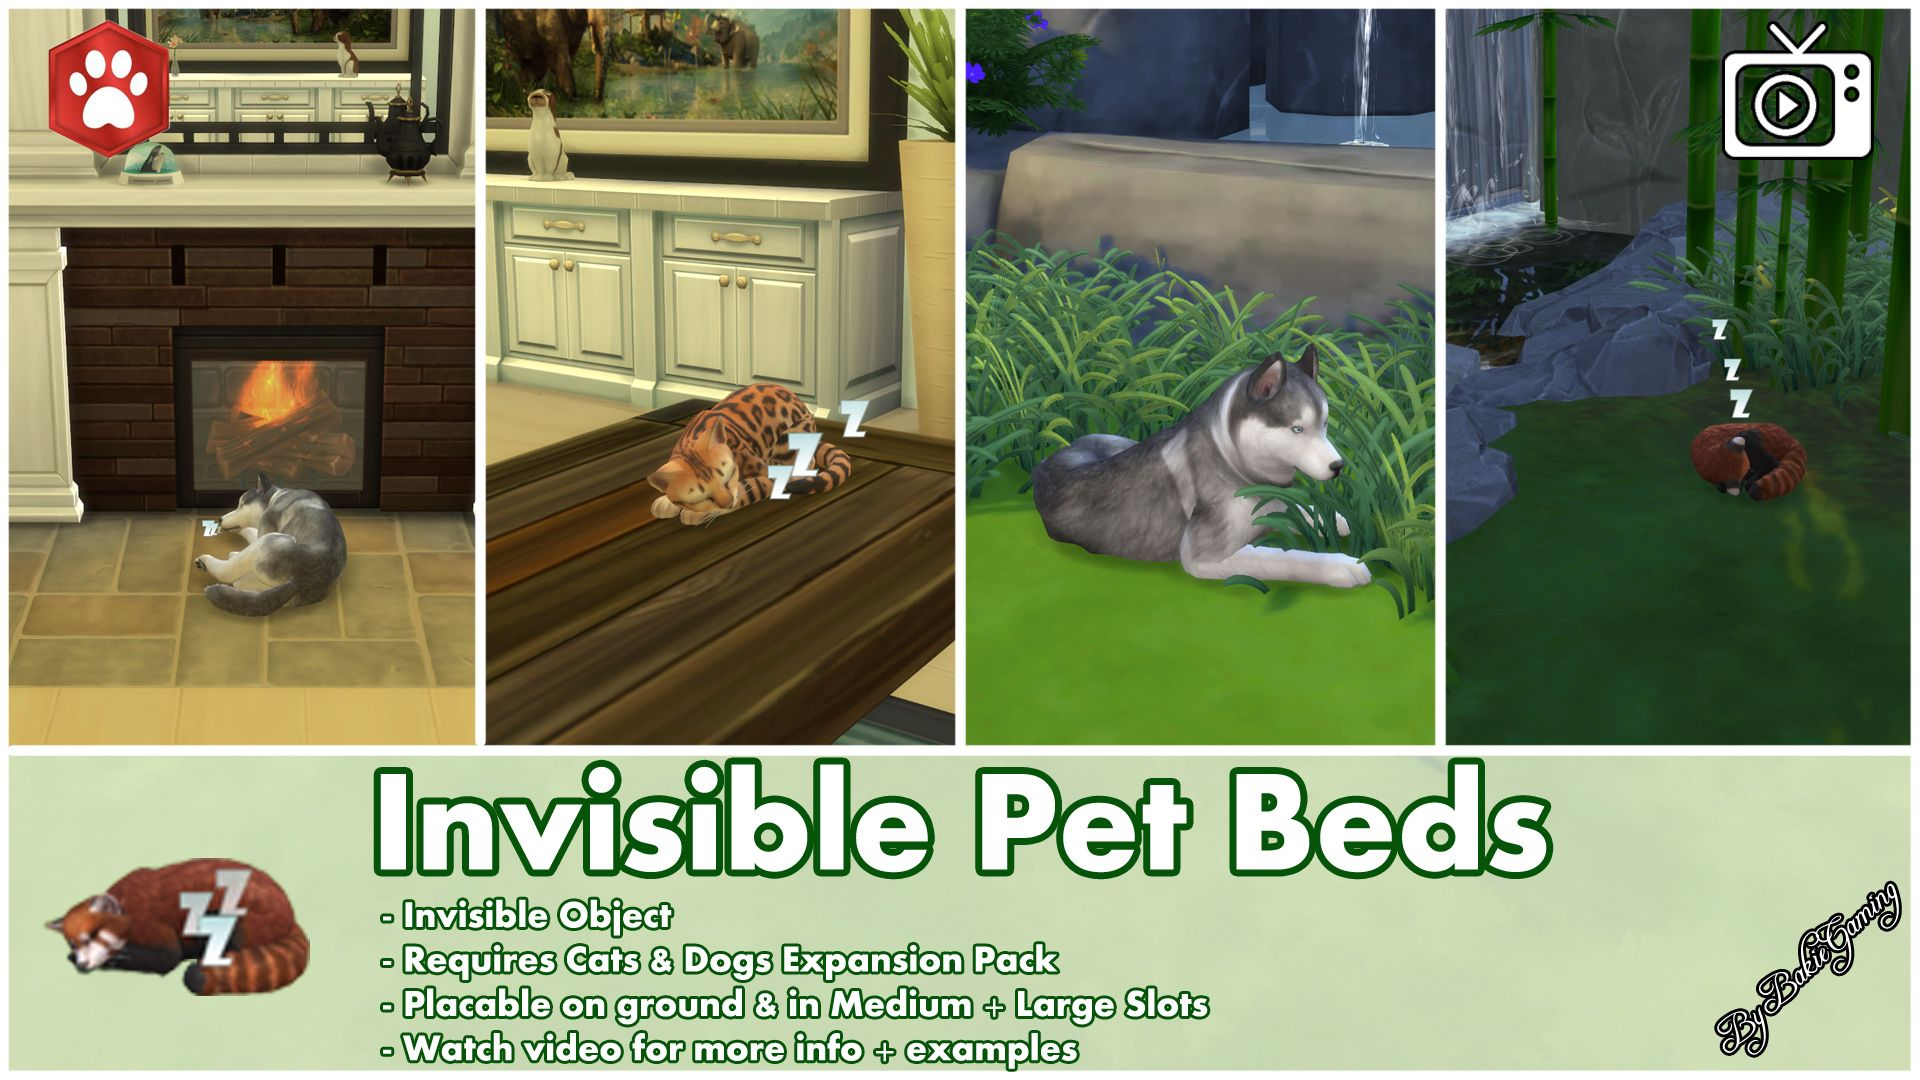 Use This Mod To Let Your Pets Sleep On The Places You Want Them Too Even On Tables Only Cats Pet Beds Sims Pets Sims 4 Pets